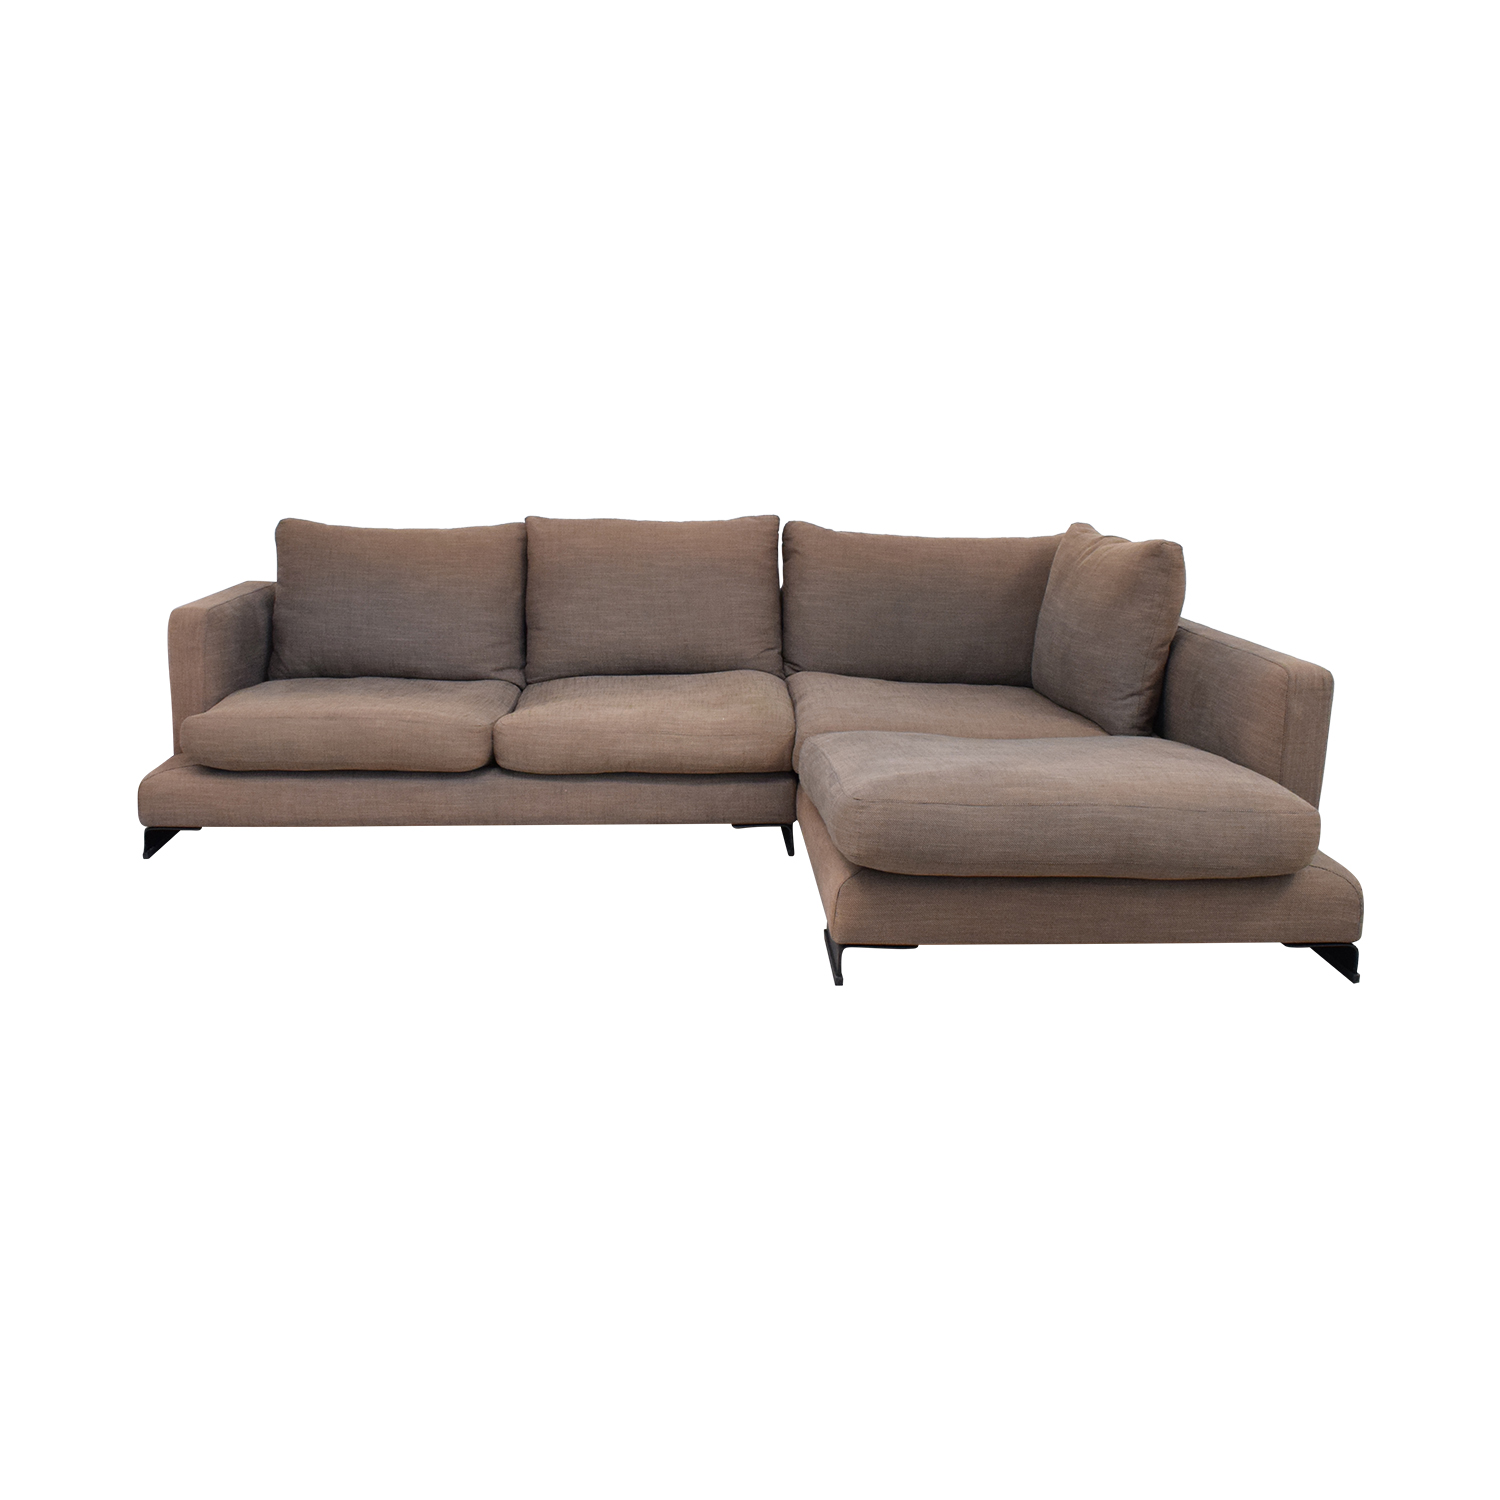 Camerich Camerich Lazy Time Custom Sectional Sofa ct